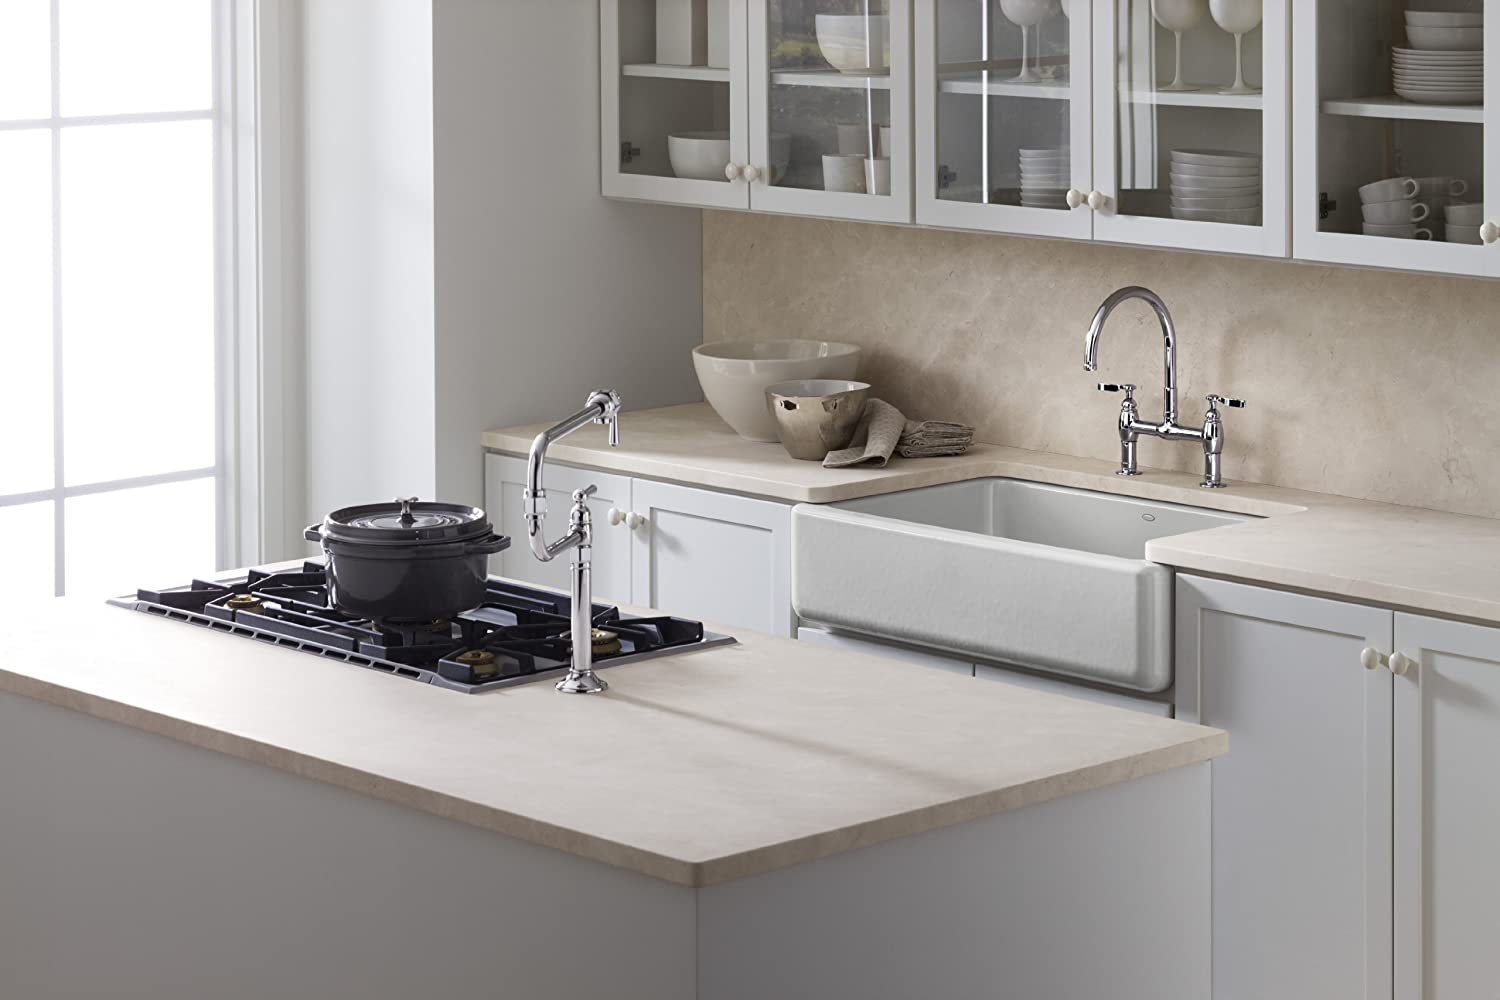 Charmant Cast Iron Sink Reviews